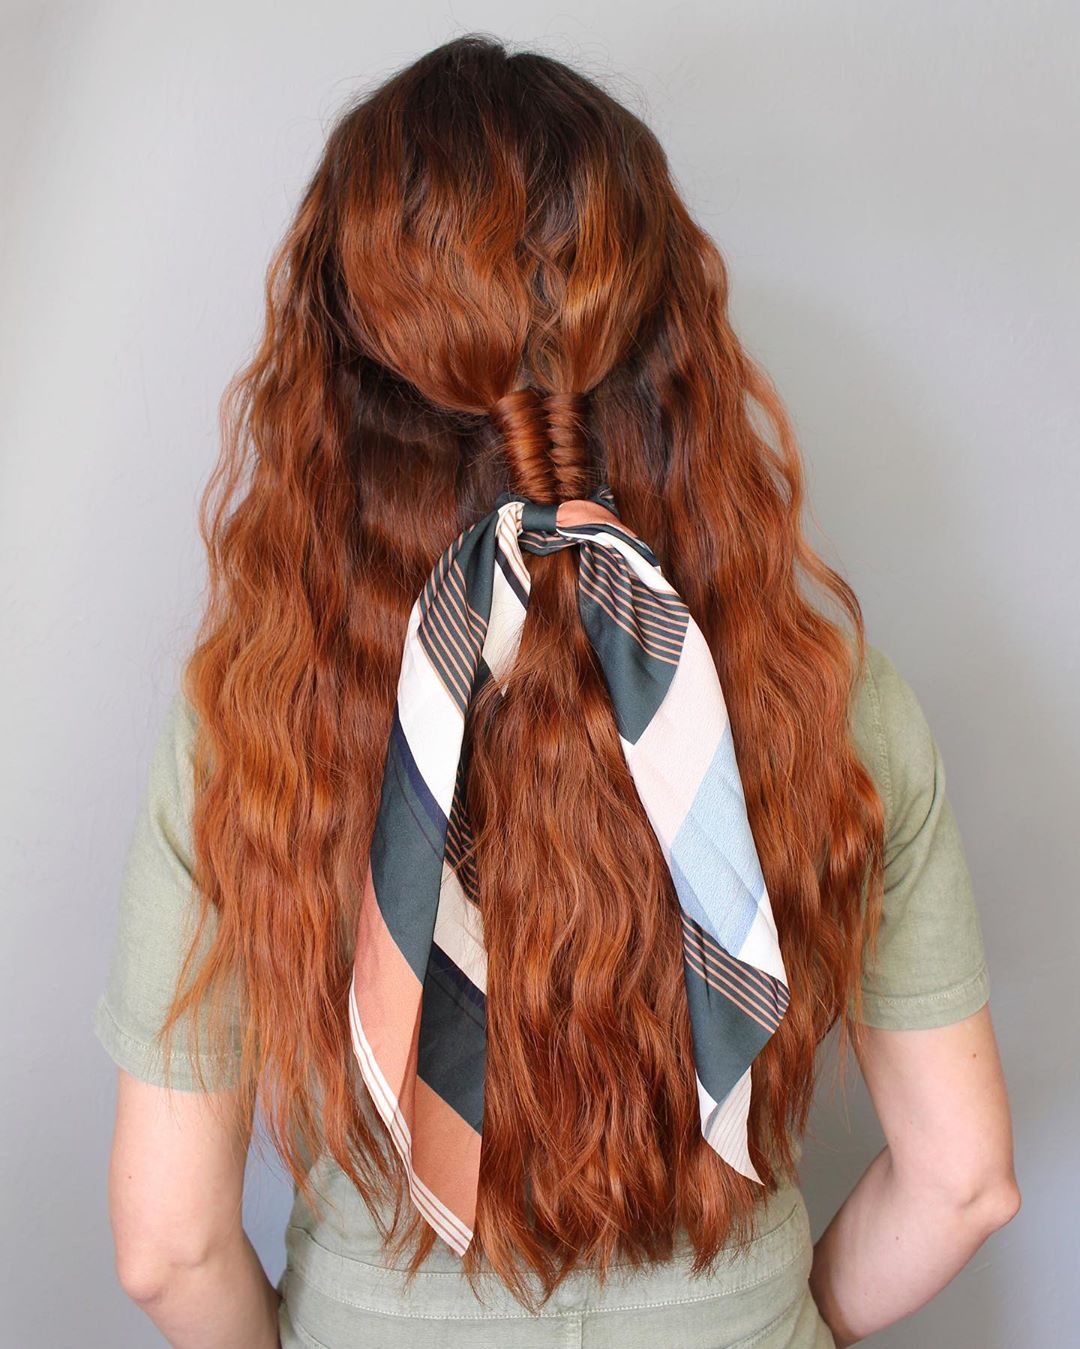 Beautiful image of a wave iron hairstyle